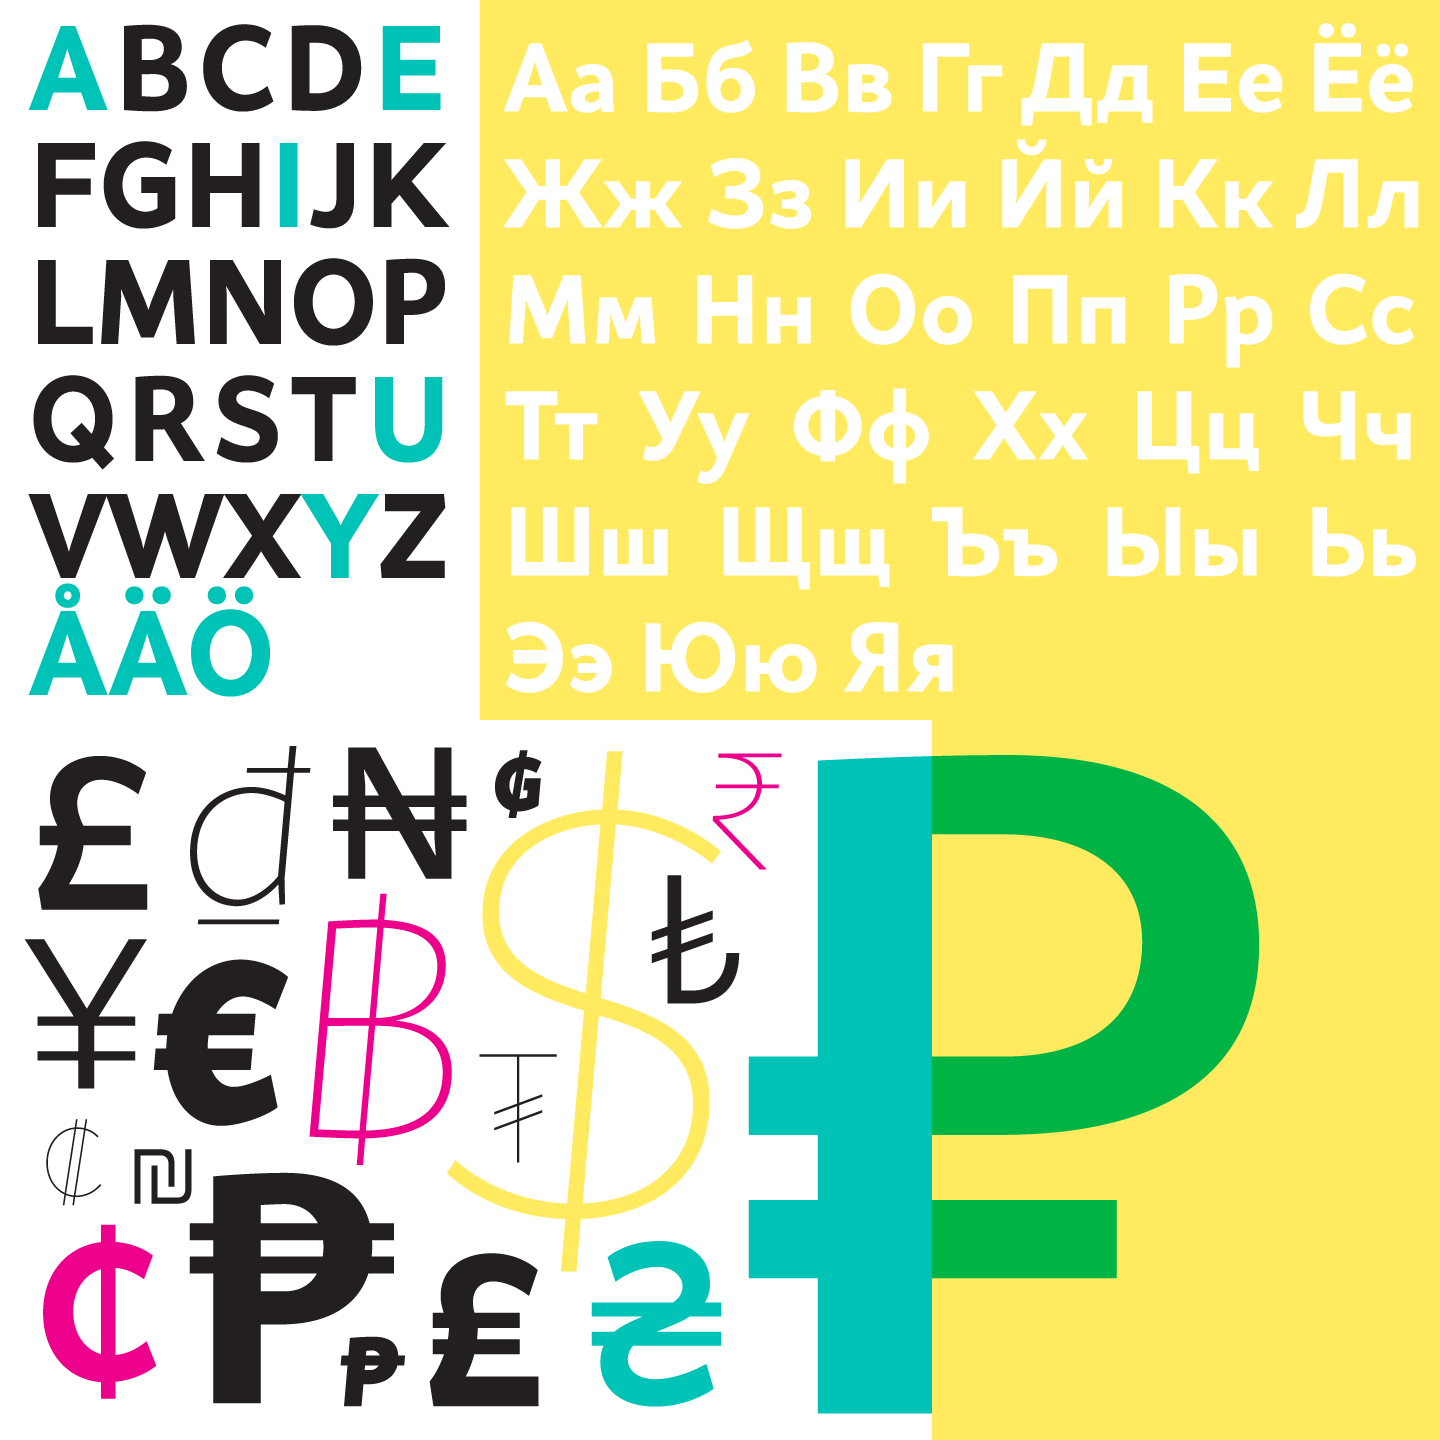 Latin letters vs Cyrillic letters plus special characters.